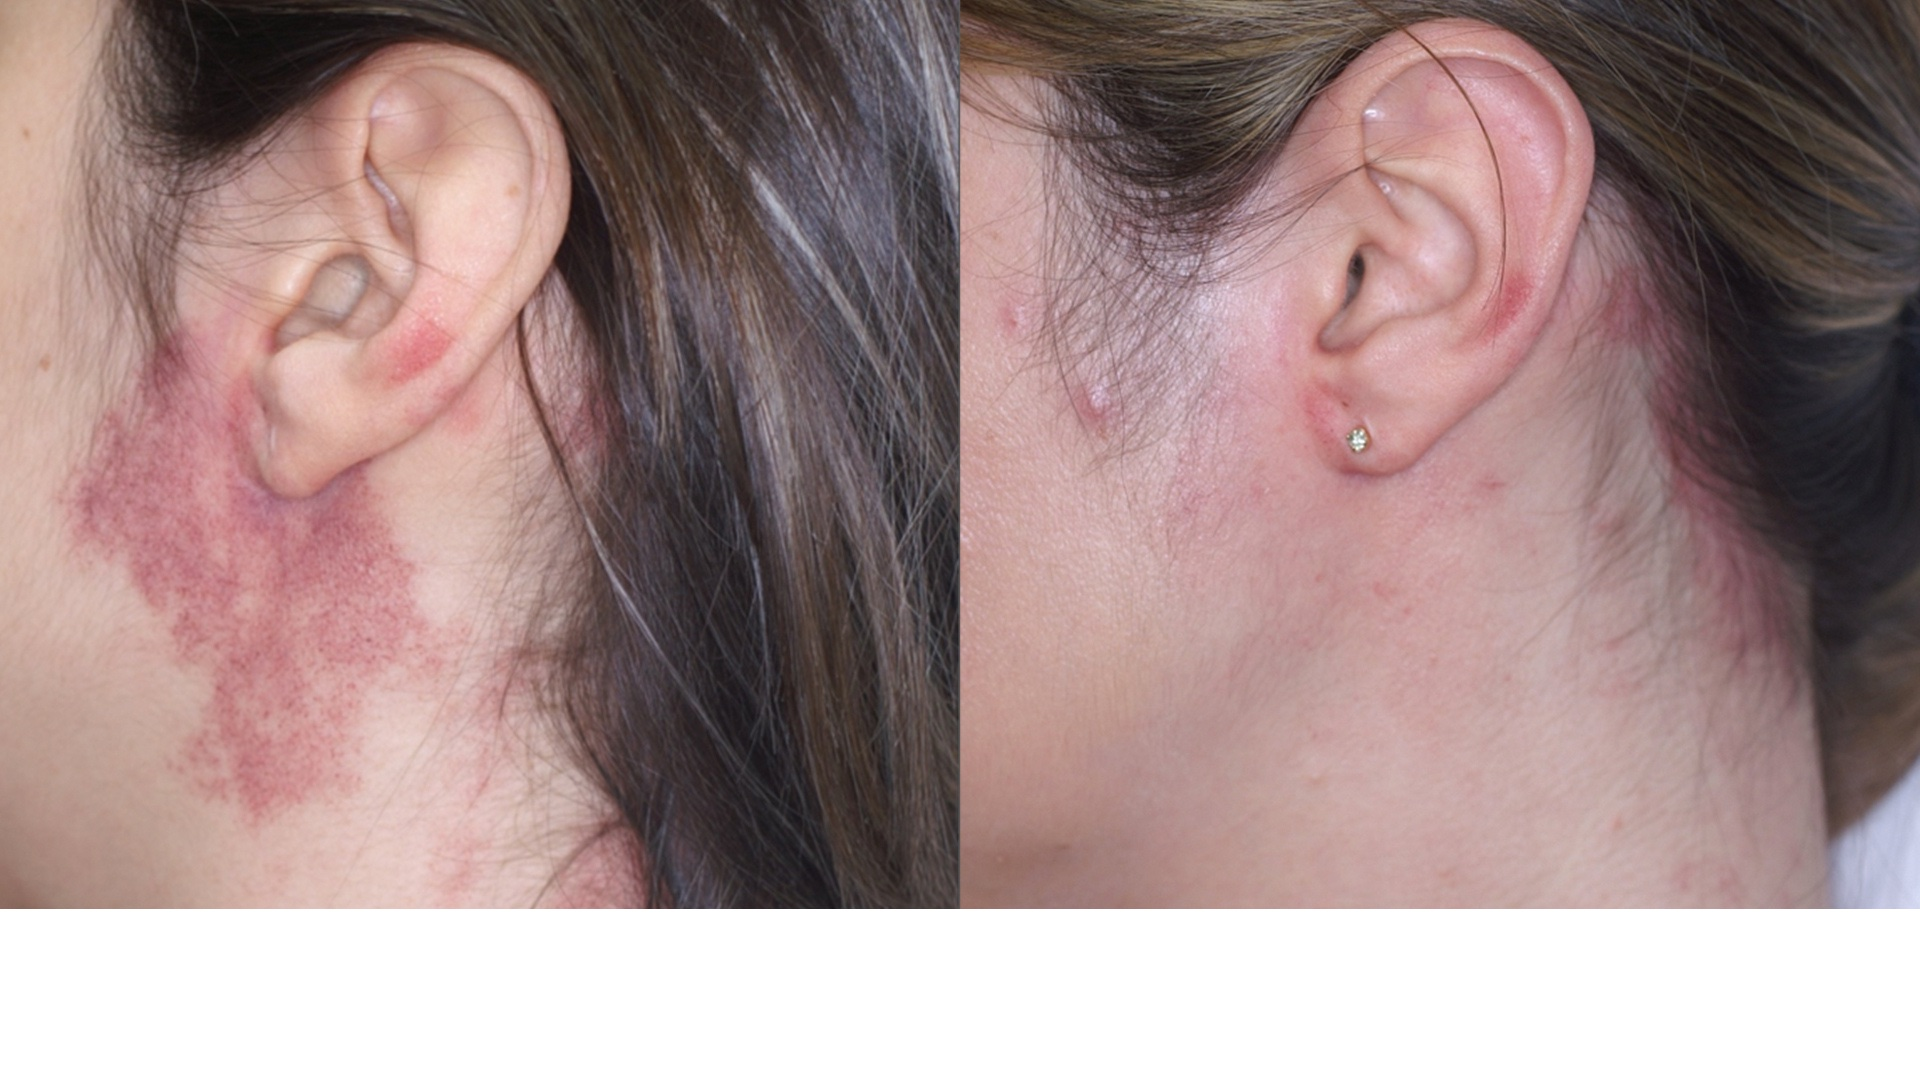 IPL photofacial before/after image — ears and cheek